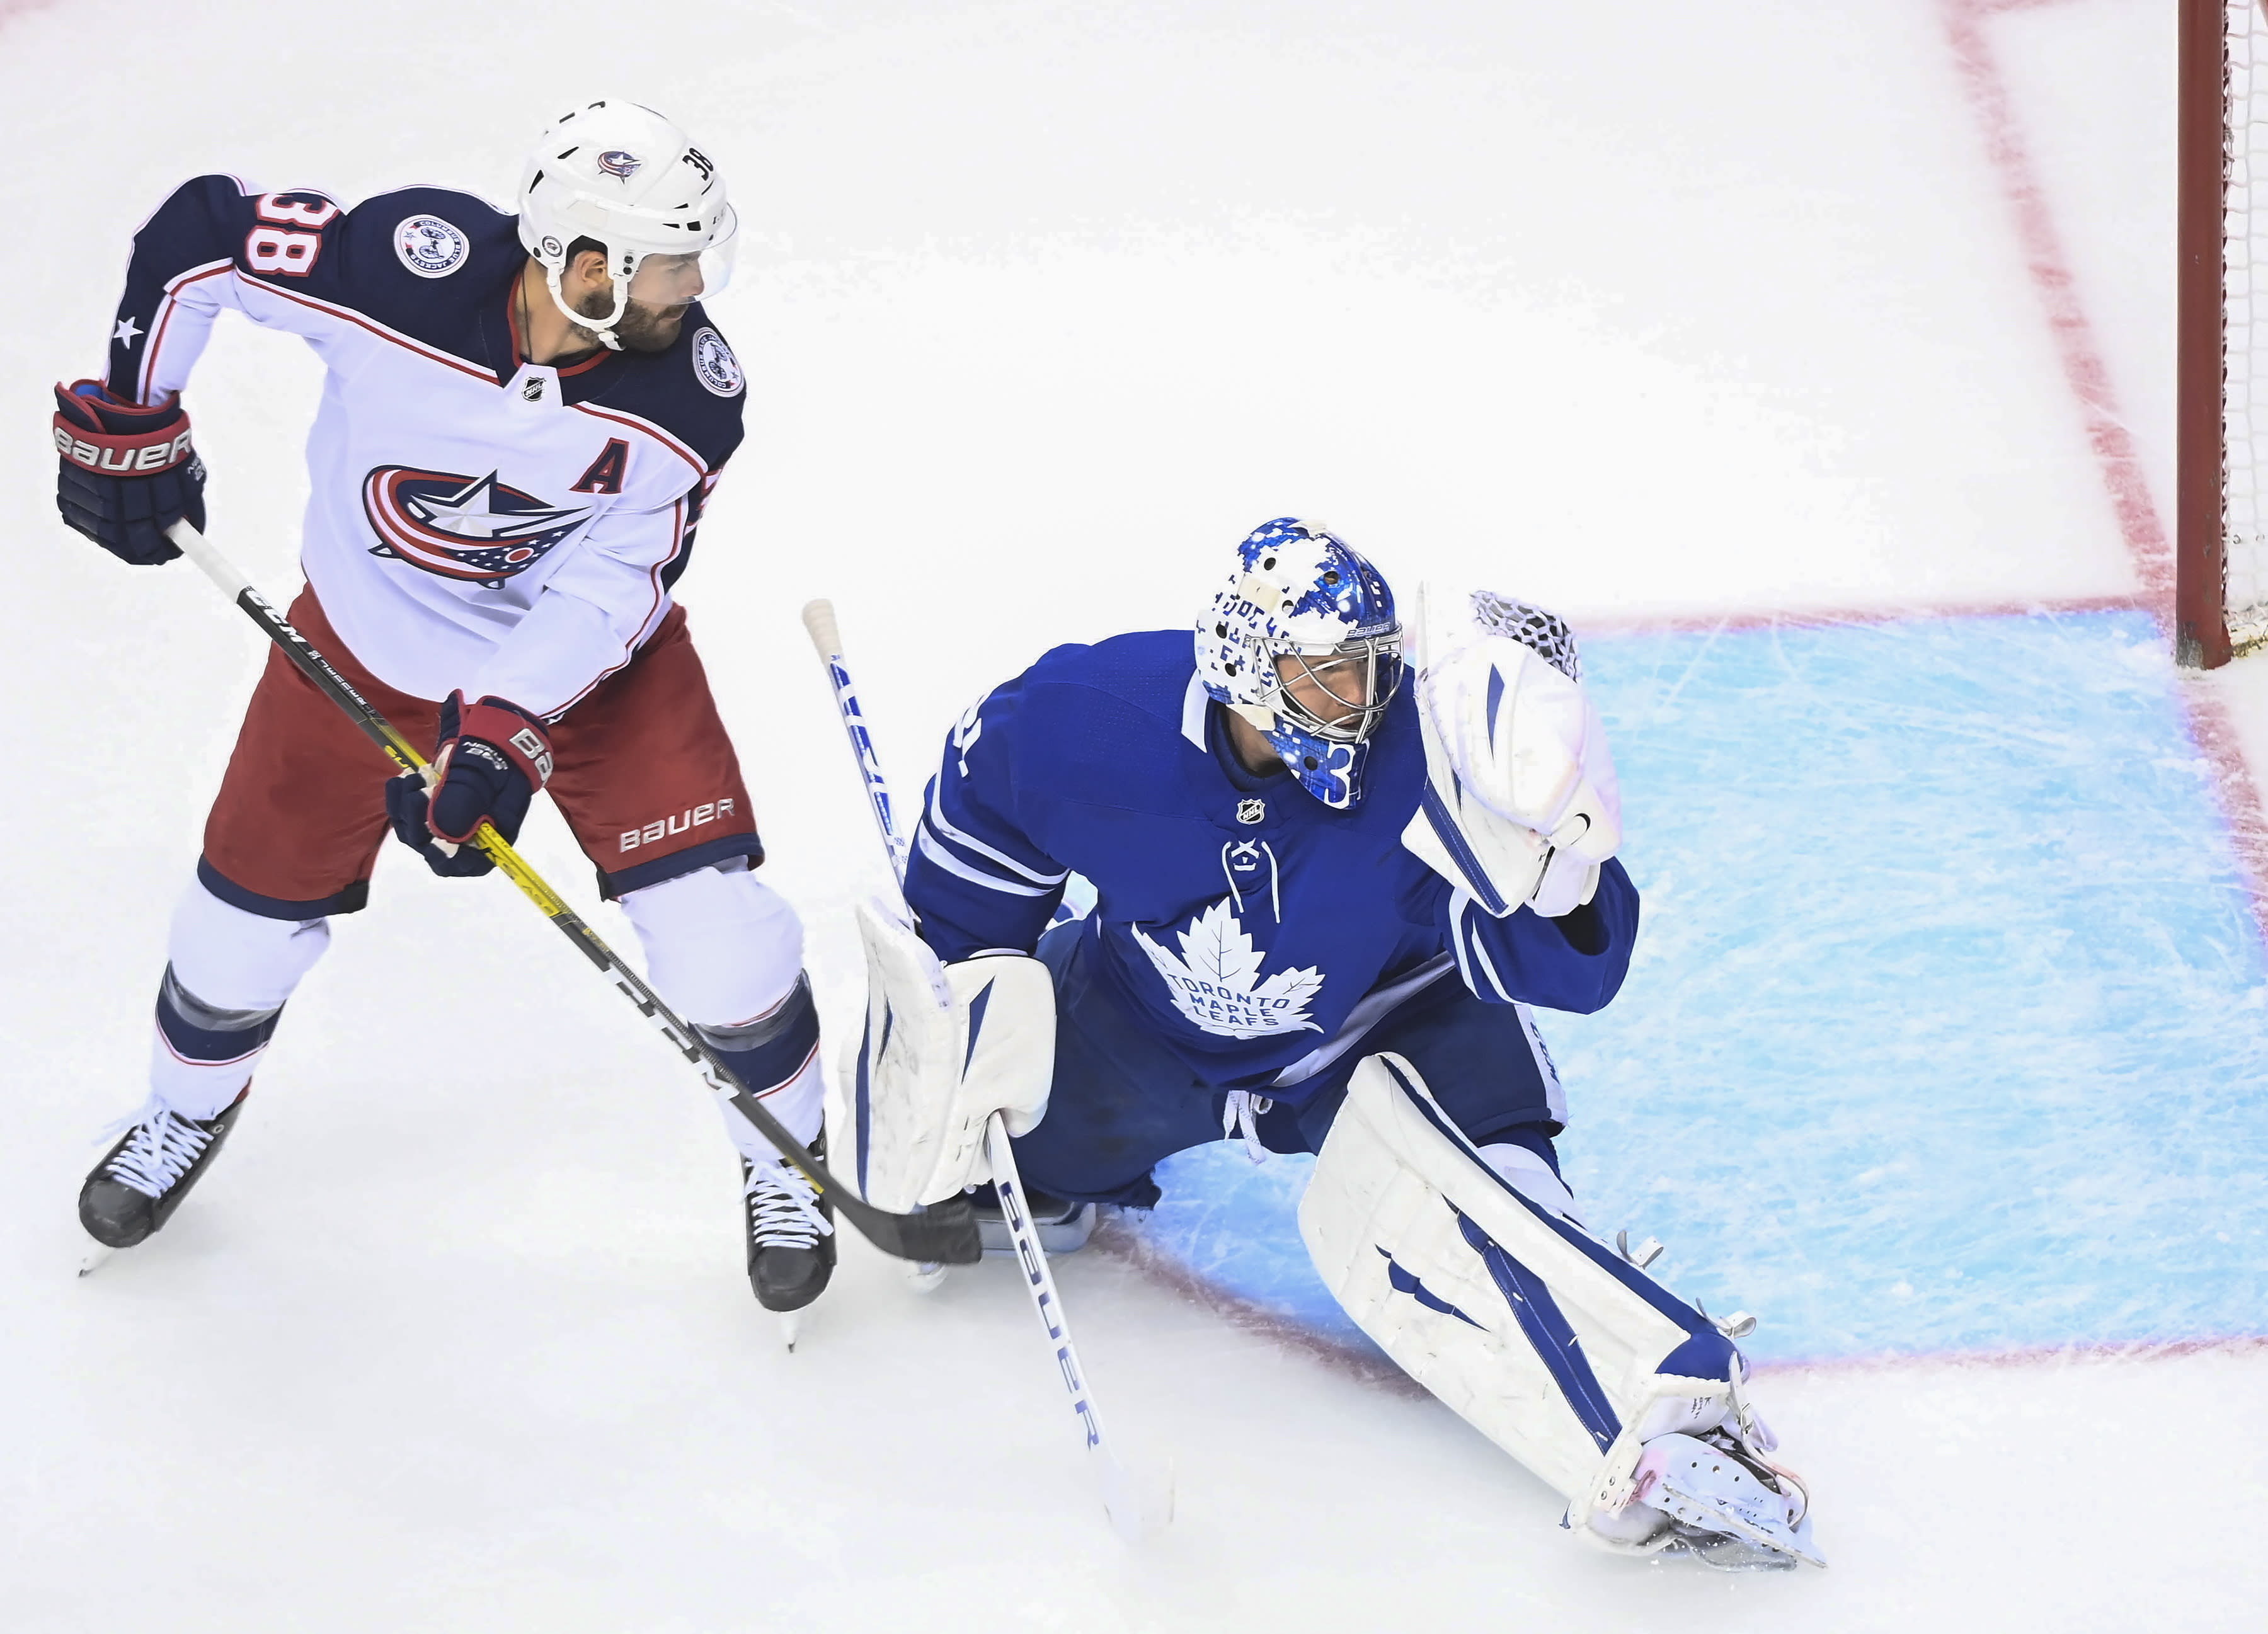 Toronto Maple Leafs goaltender Frederik Andersen (31) makes a glove save as Columbus Blue Jackets center Boone Jenner (38) looks on during the first period of an NHL Eastern Conference Stanley Cup playoff game in Toronto on Sunday, Aug. 9, 2020. (Nathan Denette/The Canadian Press via AP)